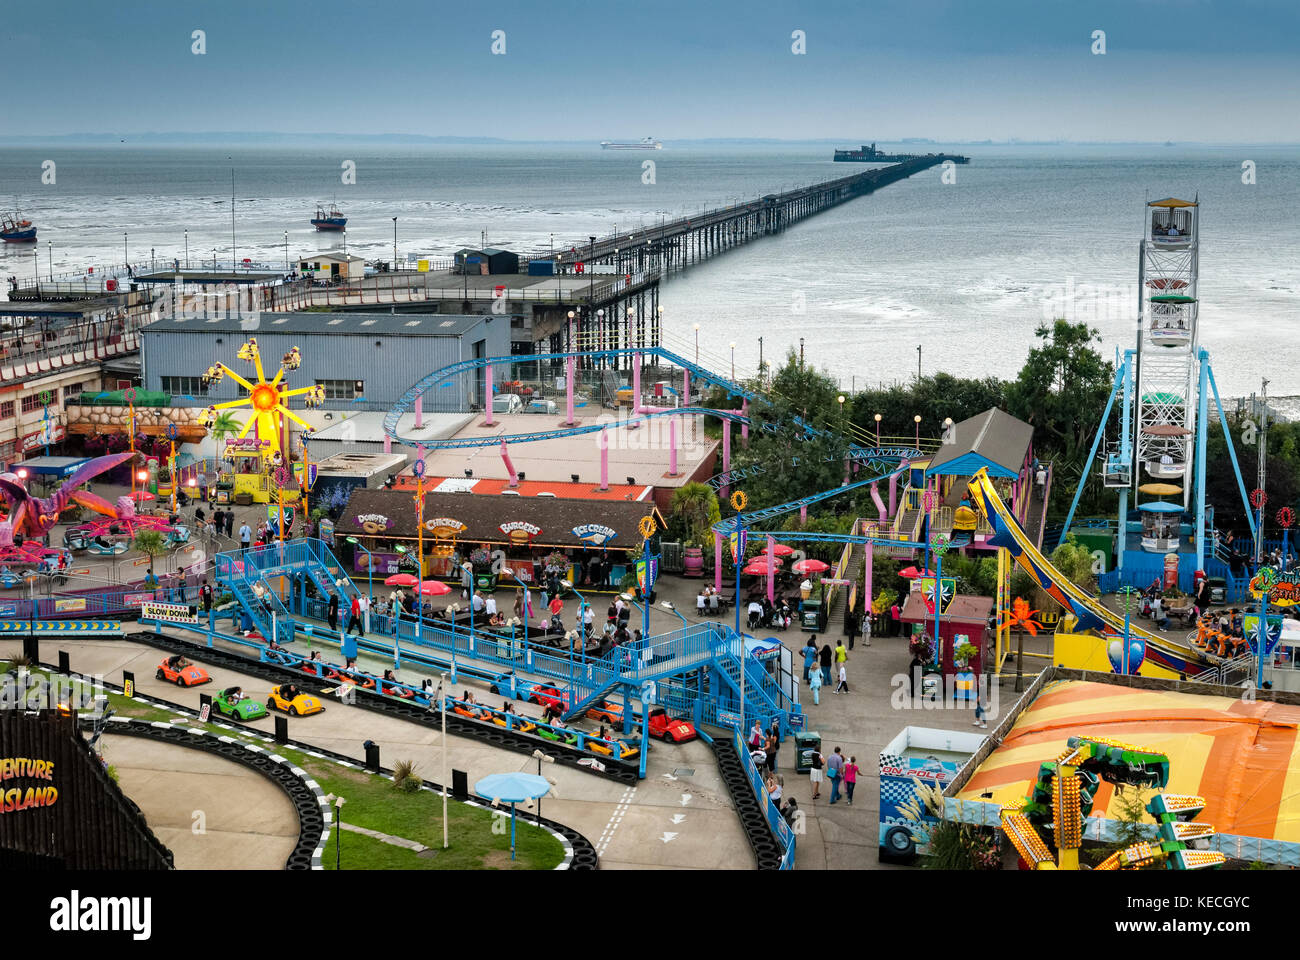 Adventure Island and Southend Pier, The longest pier in the world at 1.34 miles or 2.16 km reaching out into the - Stock Image